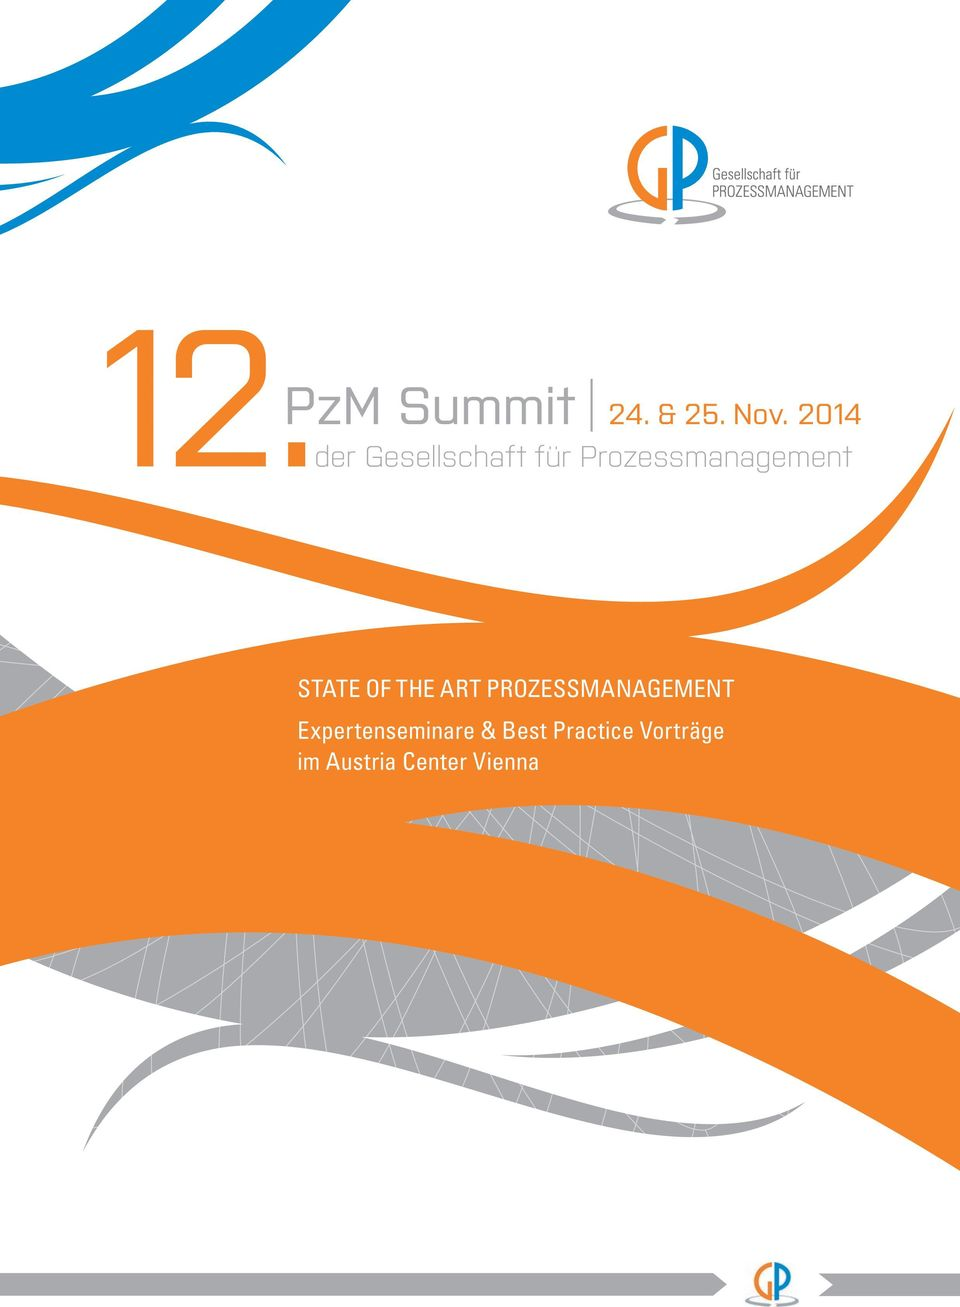 2014 STATE OF THE ART PROZESSMANAGEMENT